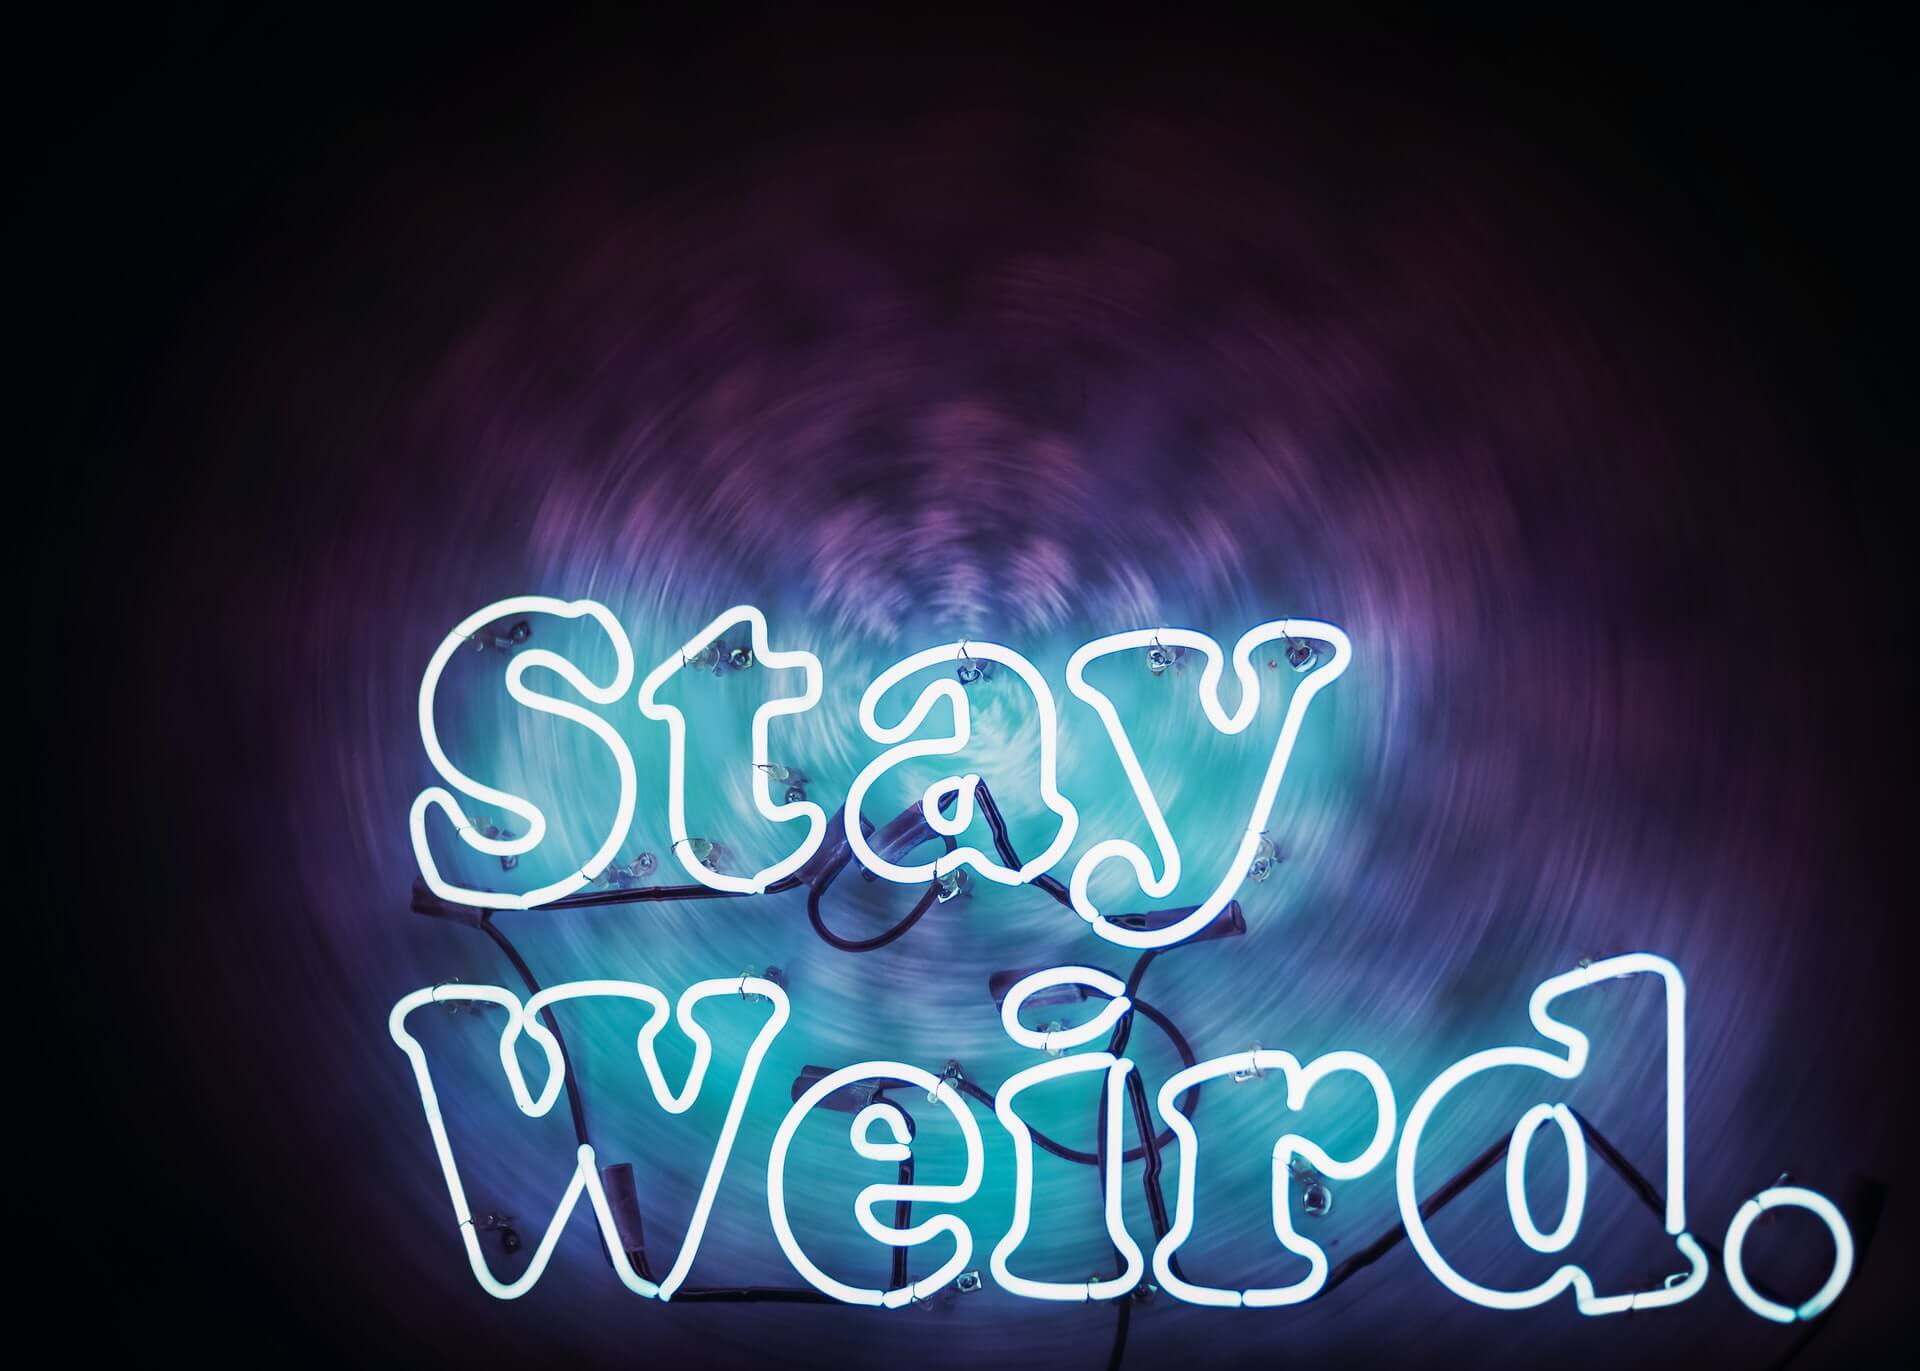 Stay Weird neon sign with purple background